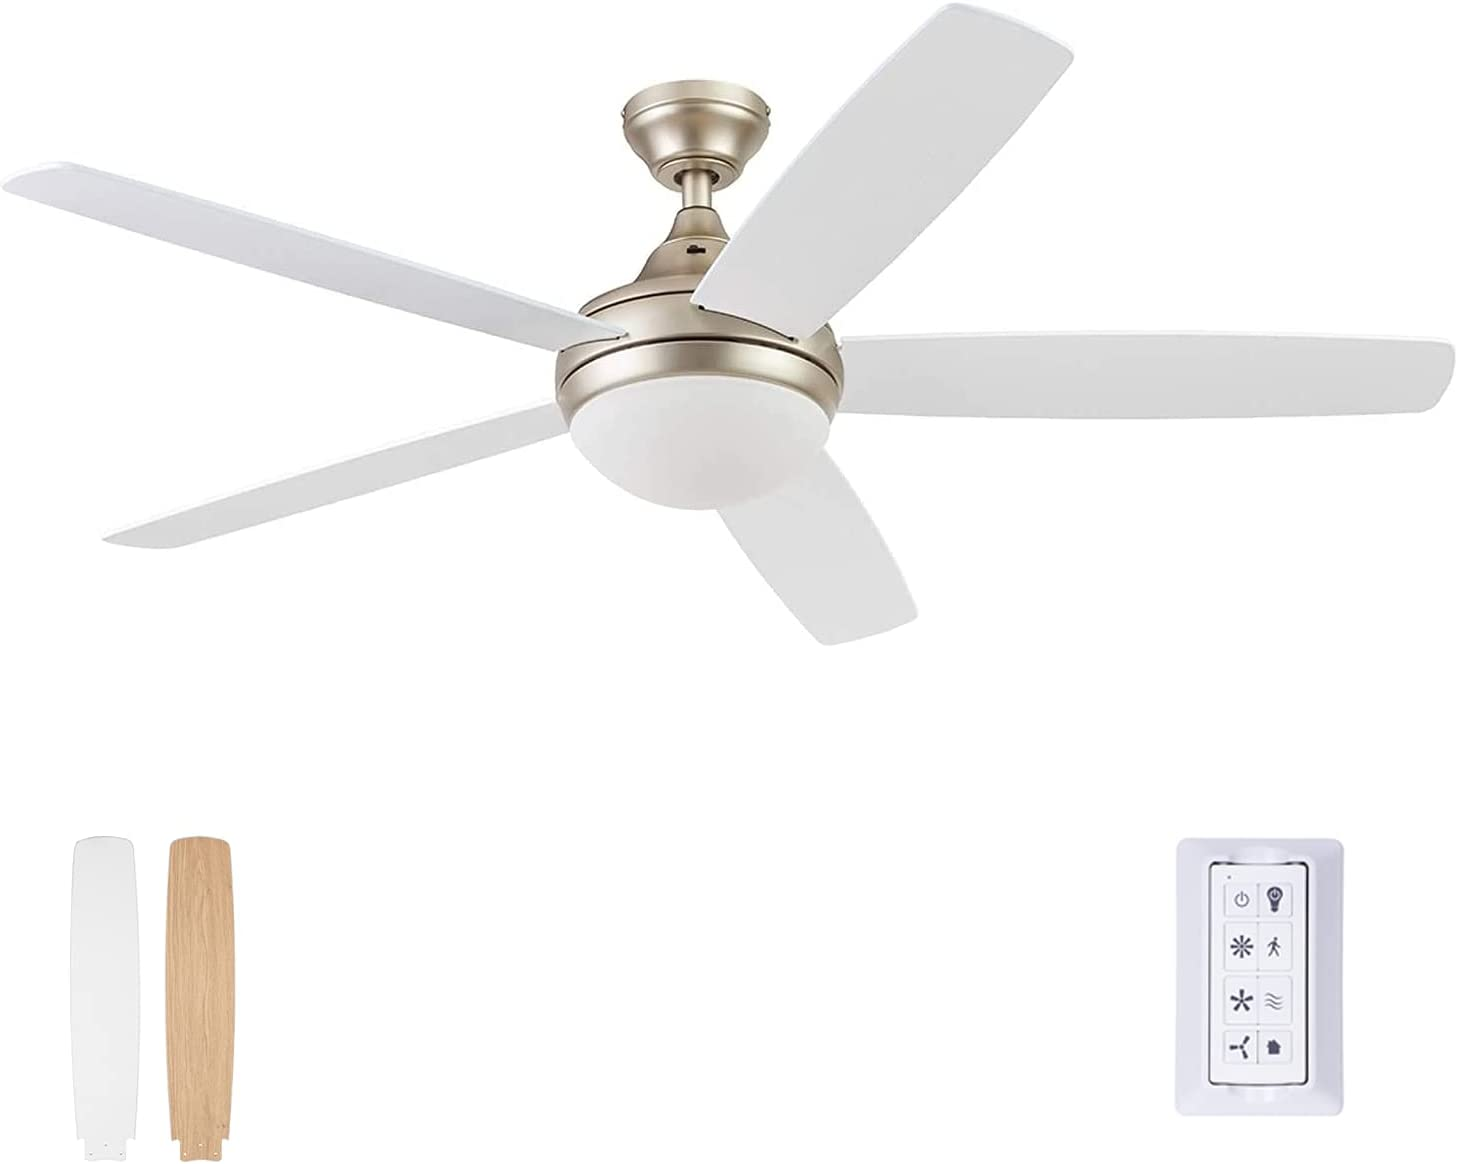 Prominence Home 51474-01 Ashby Ceiling Fan, 52, Champagne